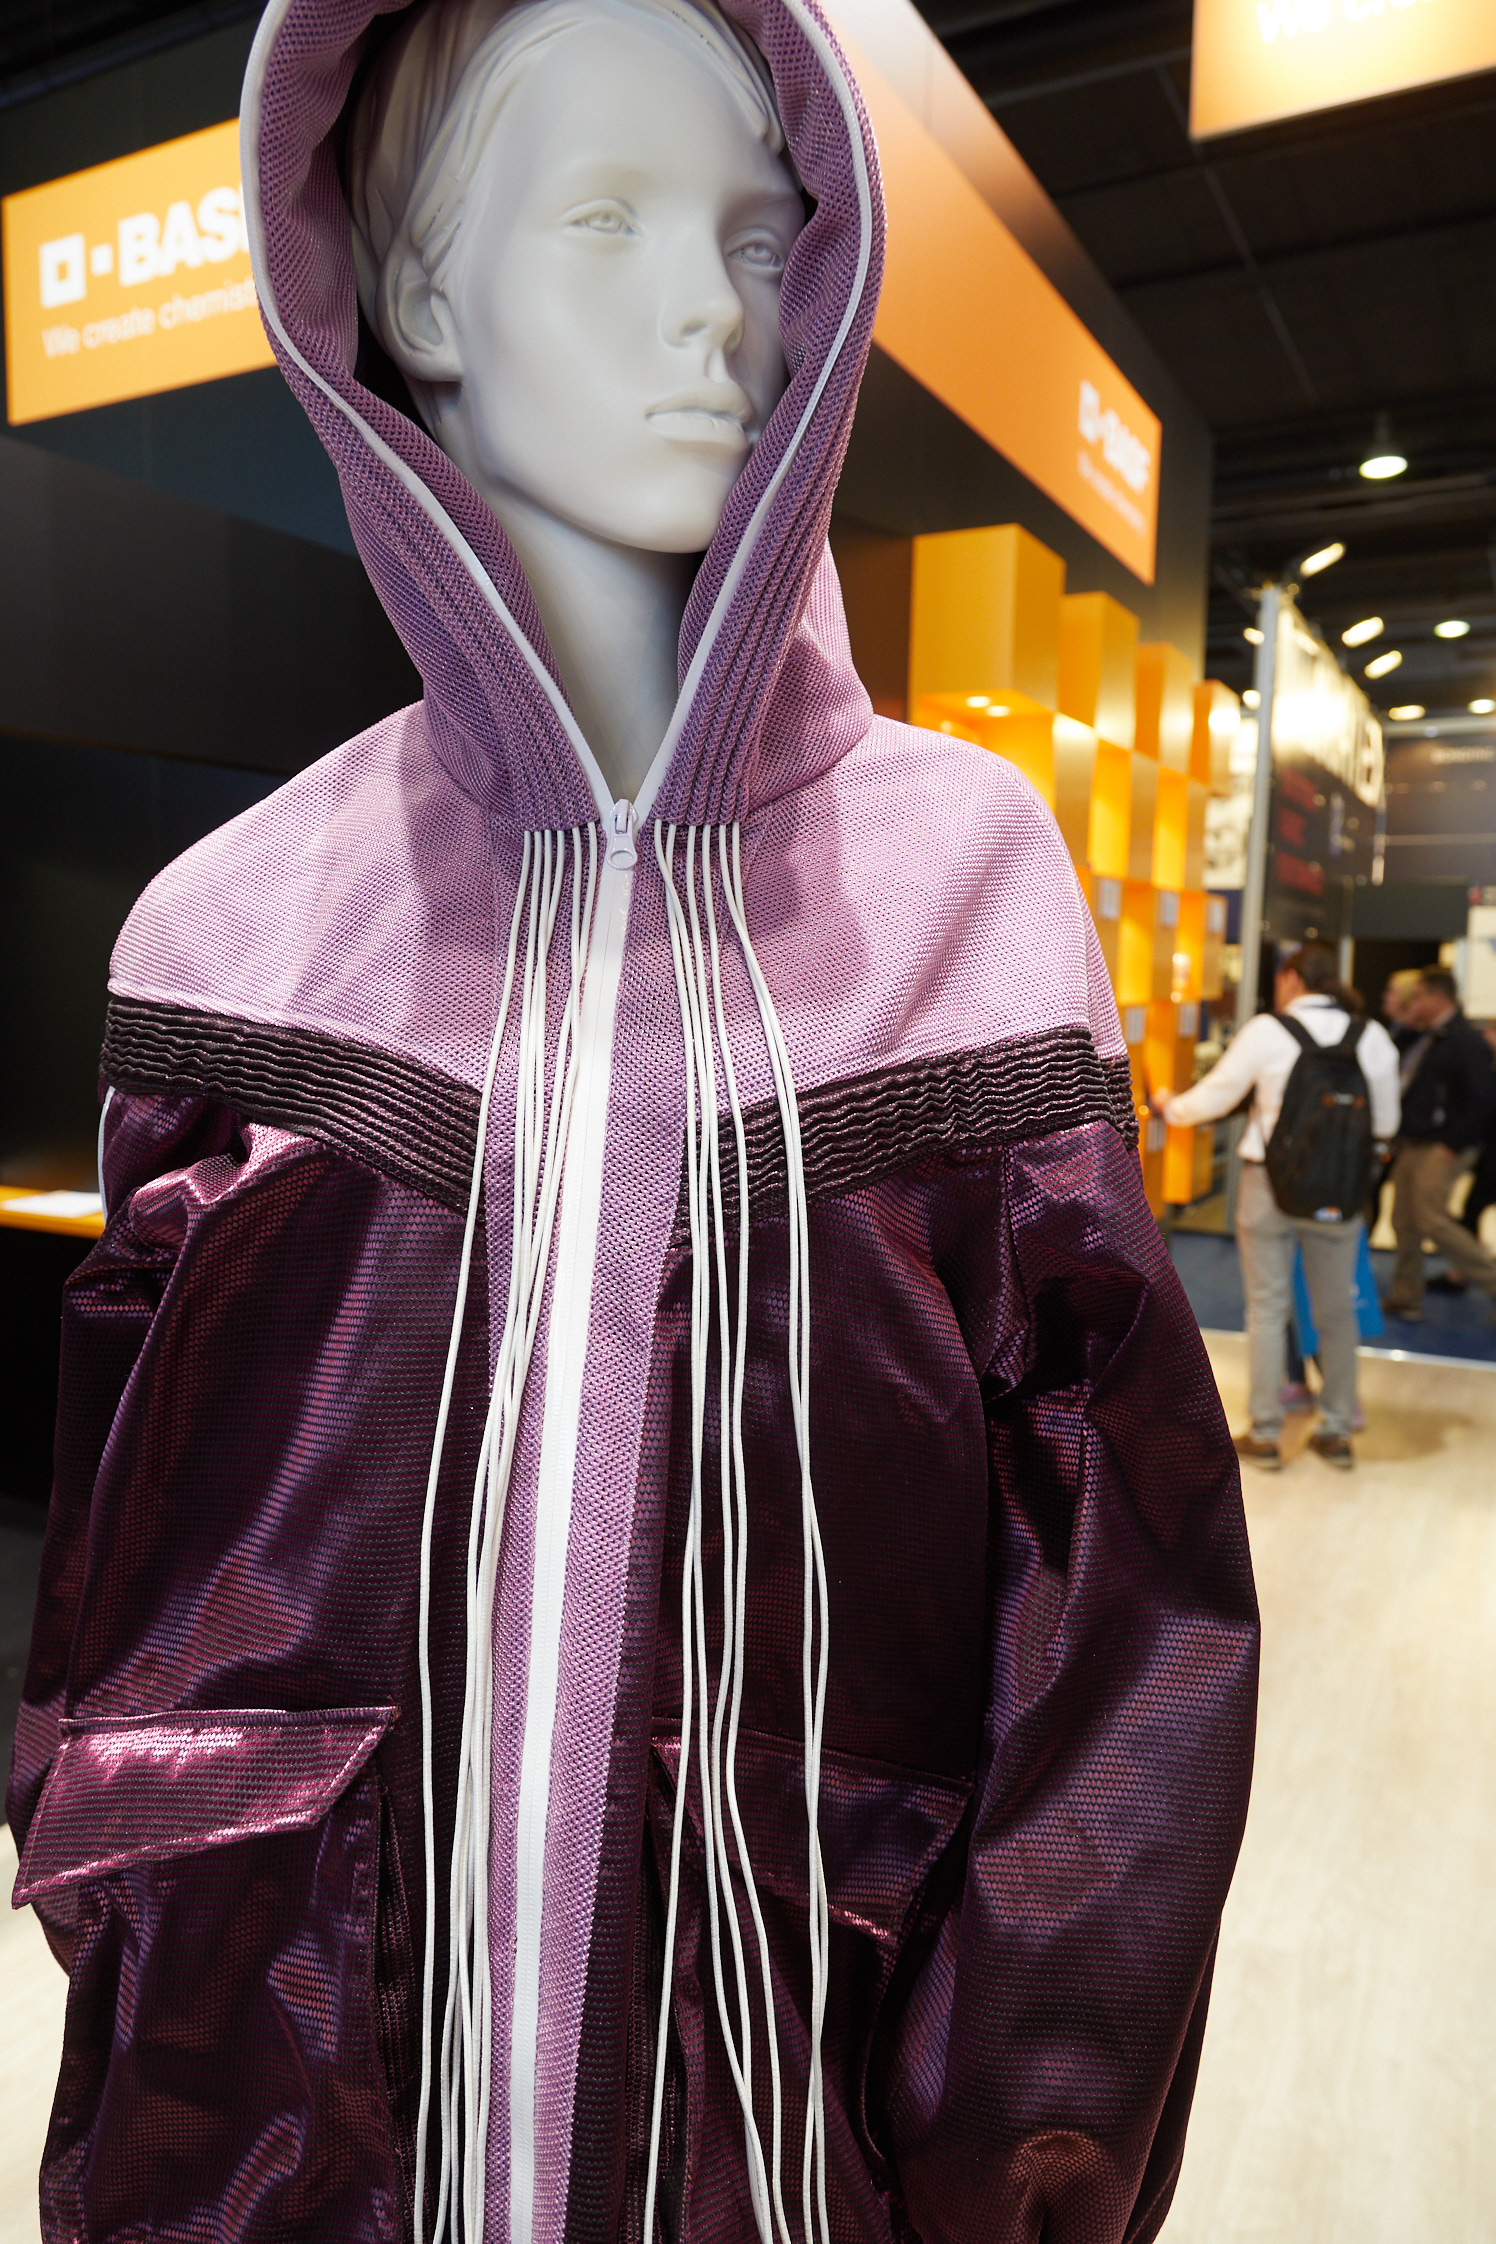 Clothtech: Metallic Fabric made with Elastollan (TPU)